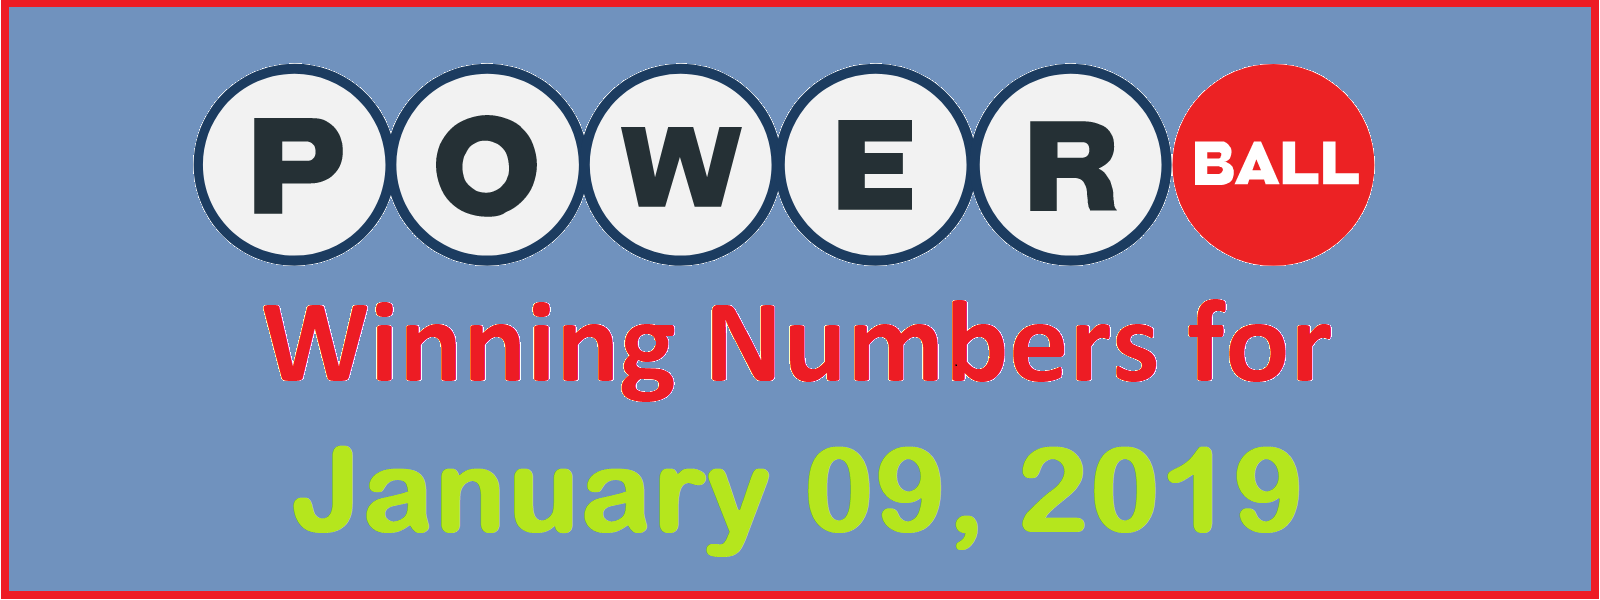 wednesday powerball lotto numbers